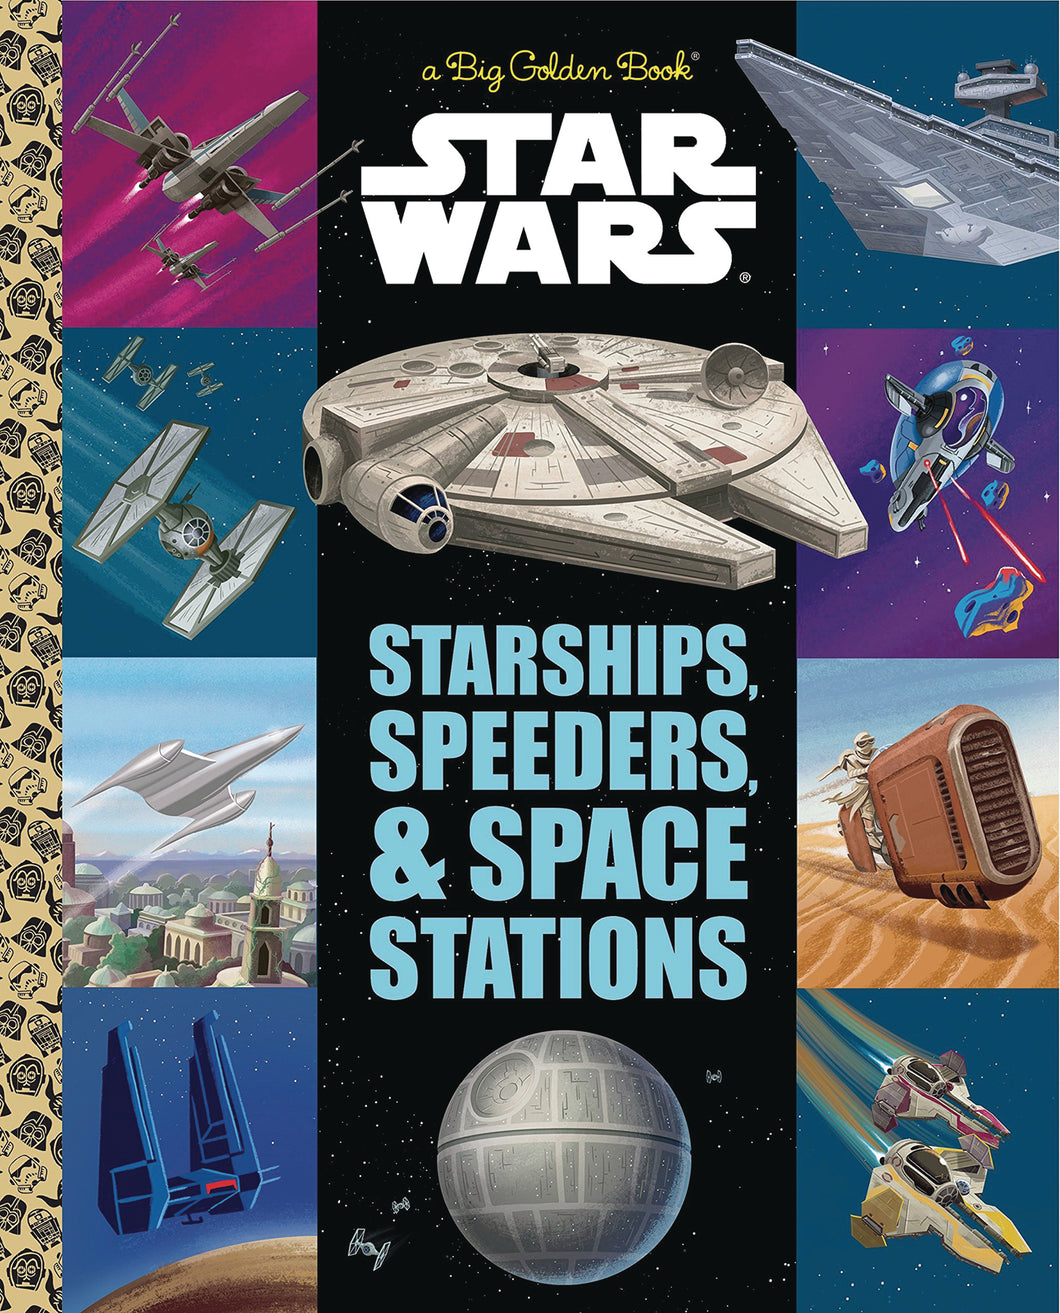 STAR WARS STARSHIPS SPEEDERS LITTLE GOLDEN BOOK (C: 1-1-0) - 2 Geeks Comics